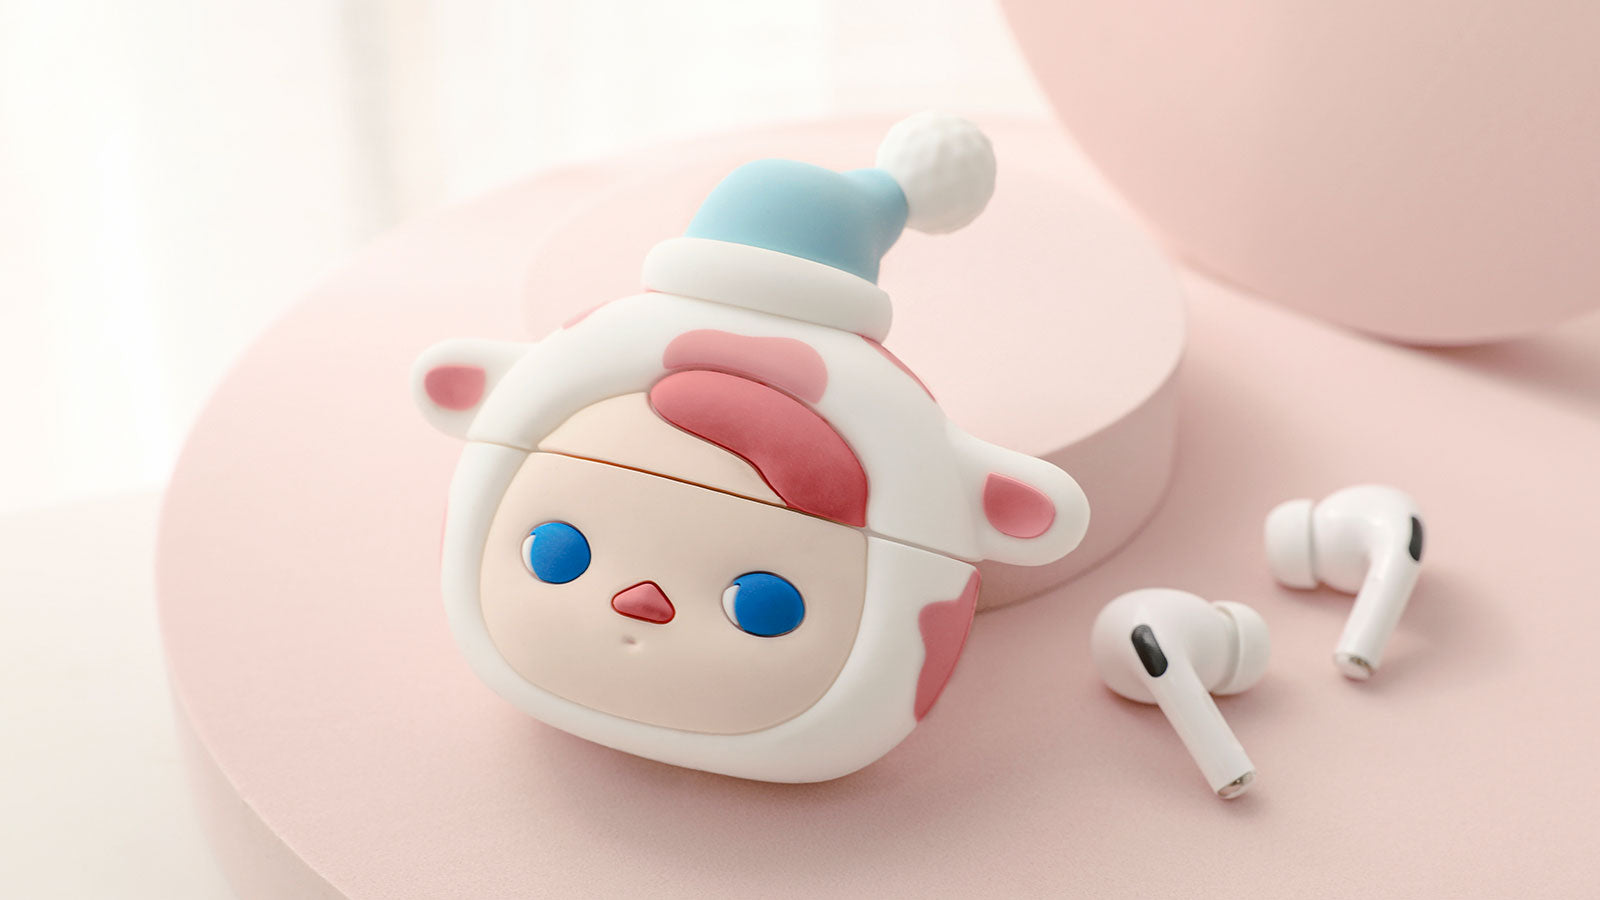 https://cdn.shopifycdn.net/s/files/1/0339/7091/3412/files/2-1_POP_MART_Pucky_Milk_Babies_Airpod_Pro_Case.jpg?v=1615949084